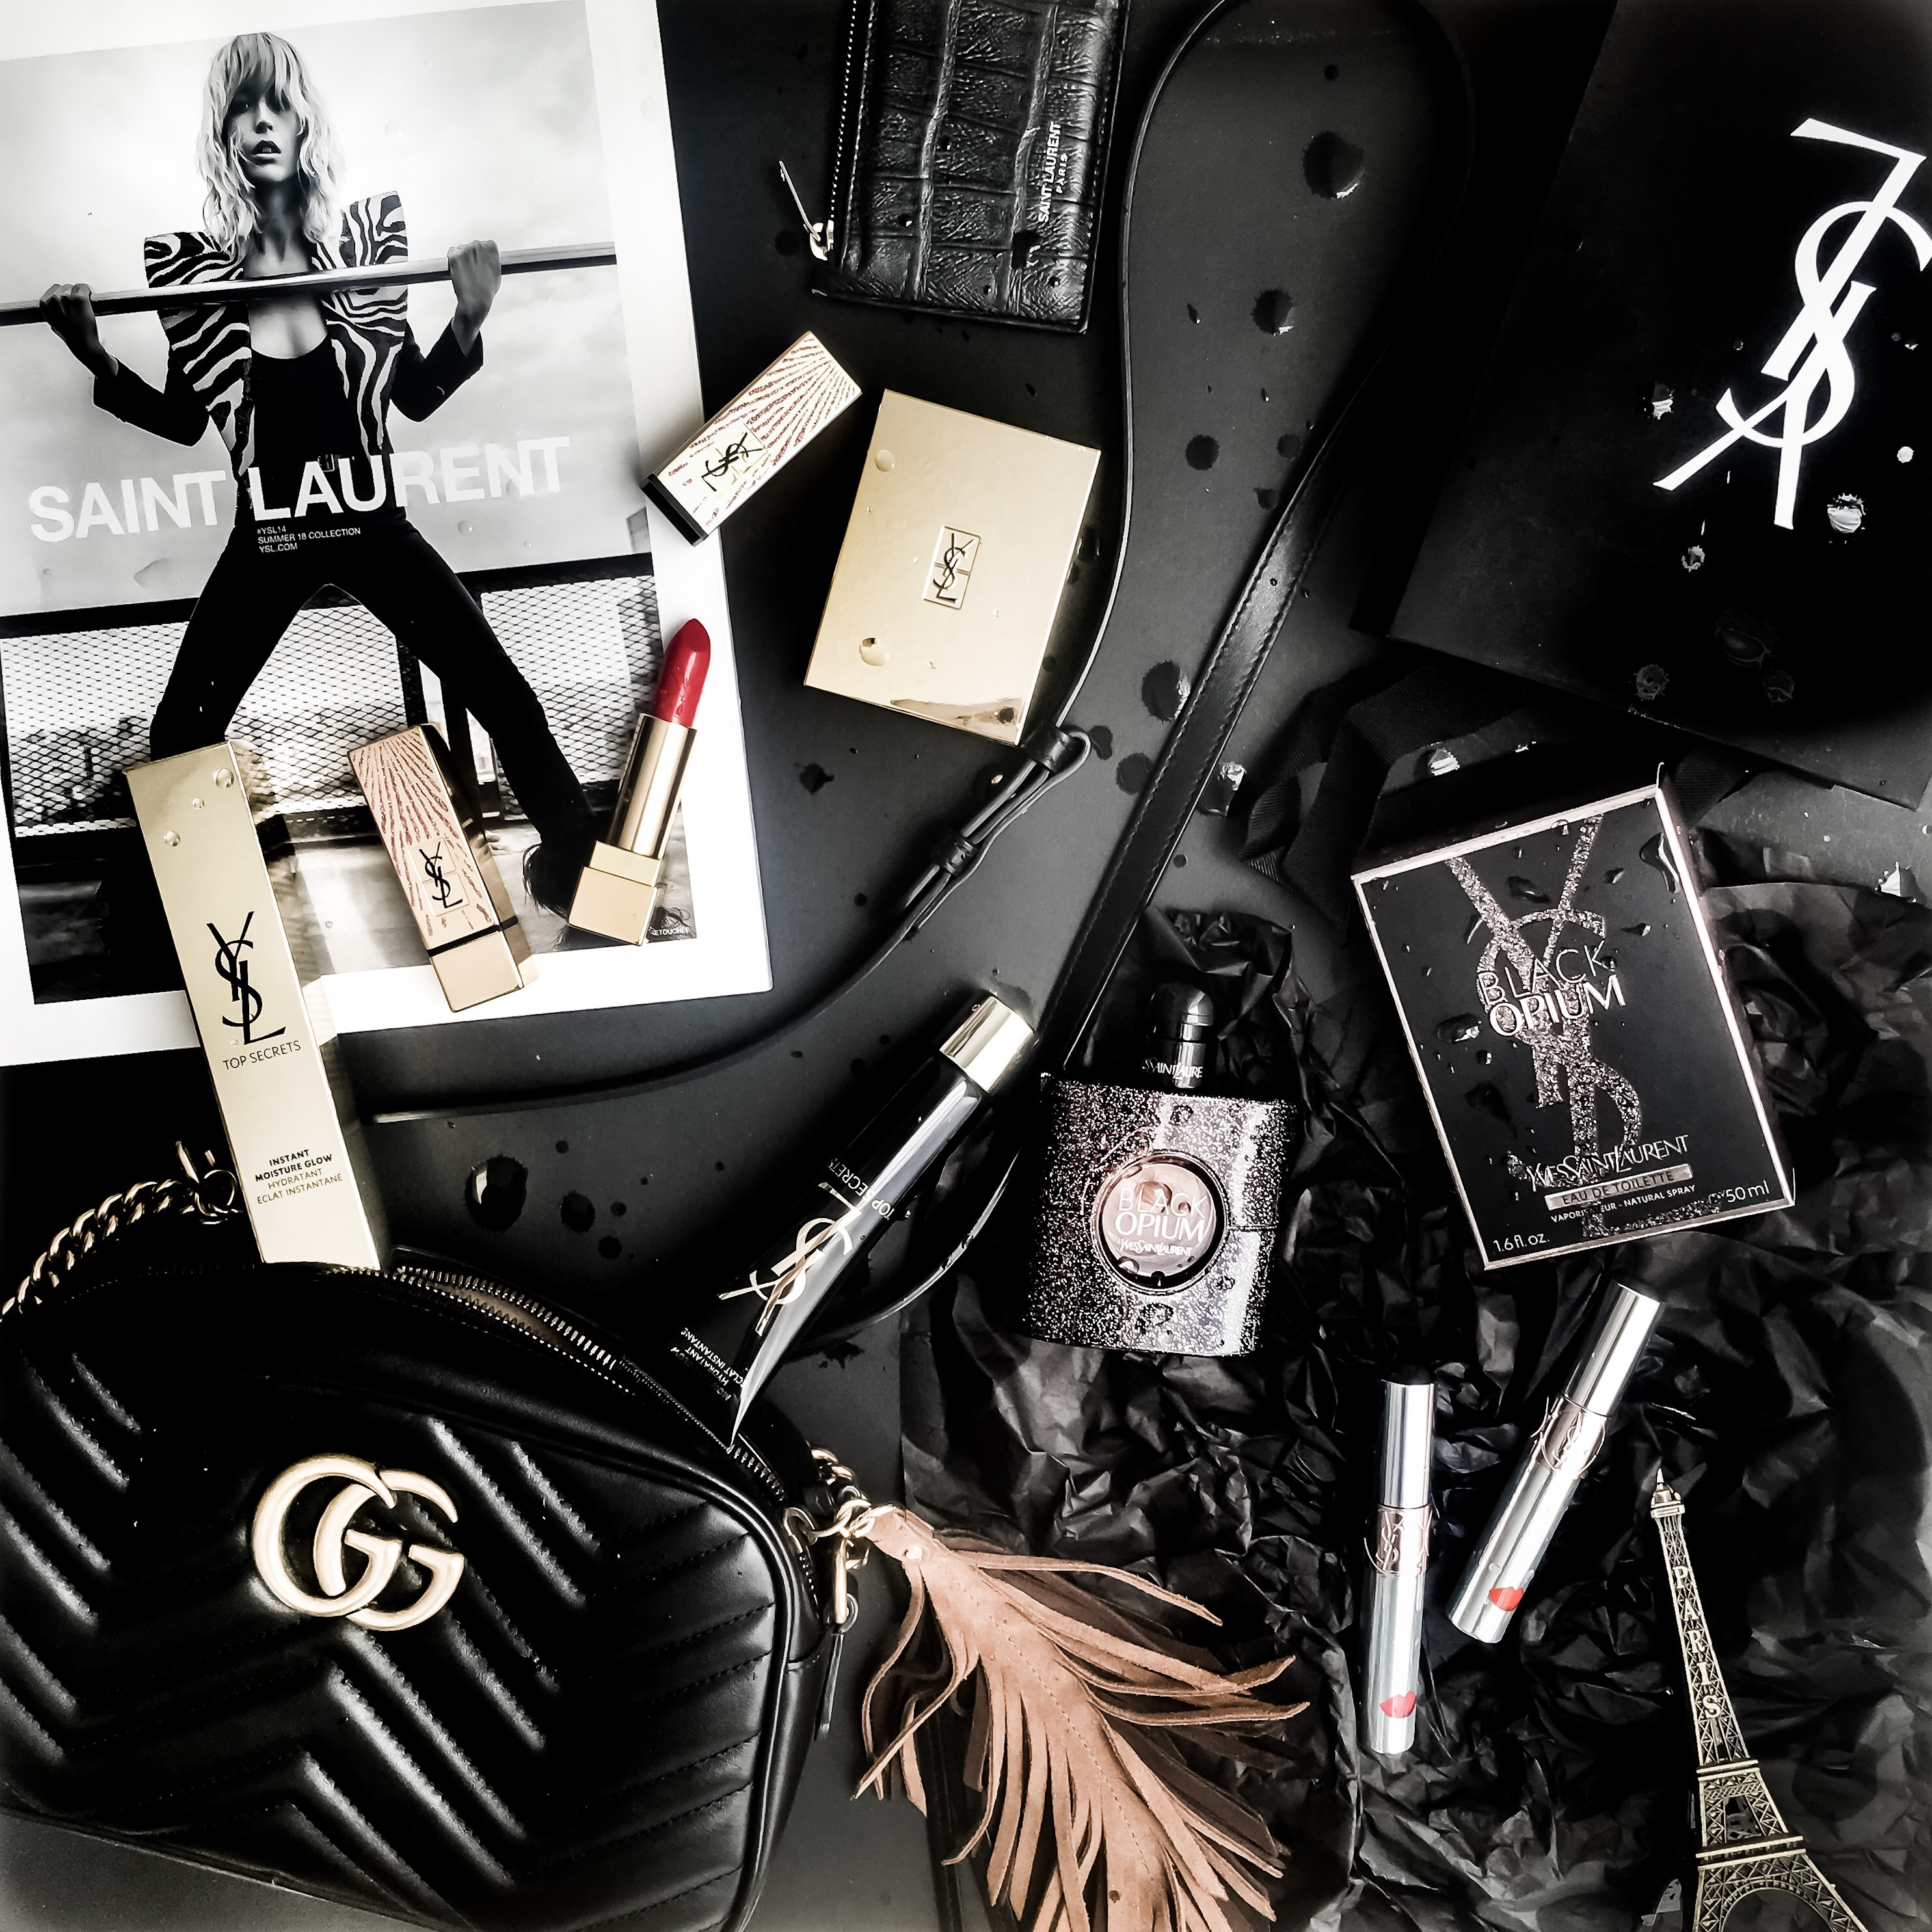 YSL: THE GIFT OF BEAUTY SHE CAN'T RESIST